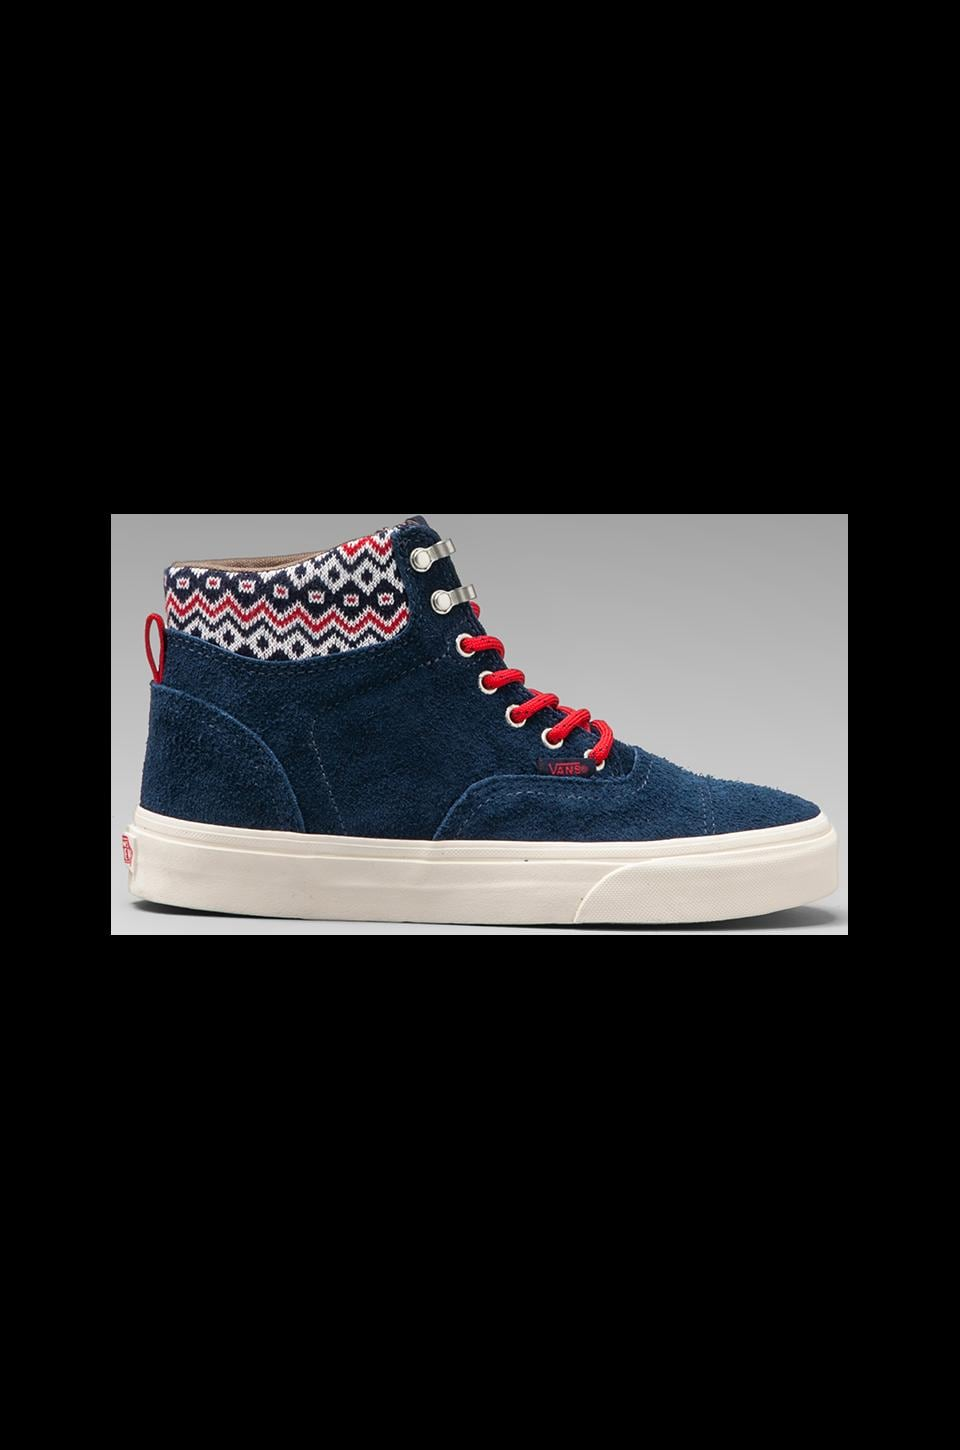 Vans California Era Hi in Dress Blues/Nordic